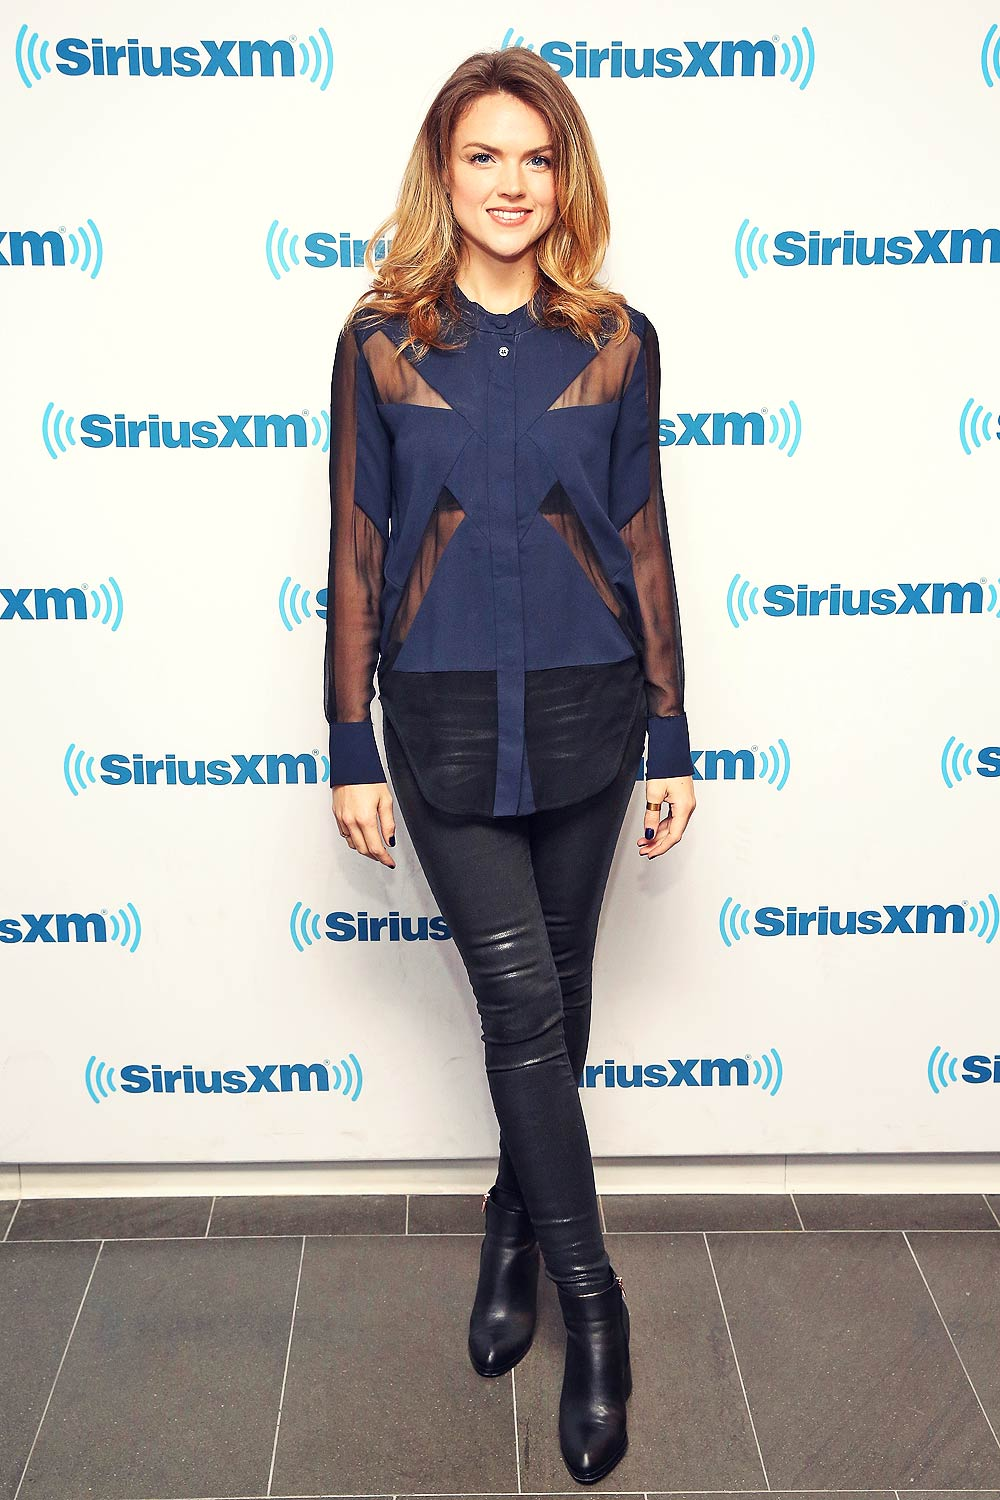 Erin Richards Visits The Siriusxm Studios Leather